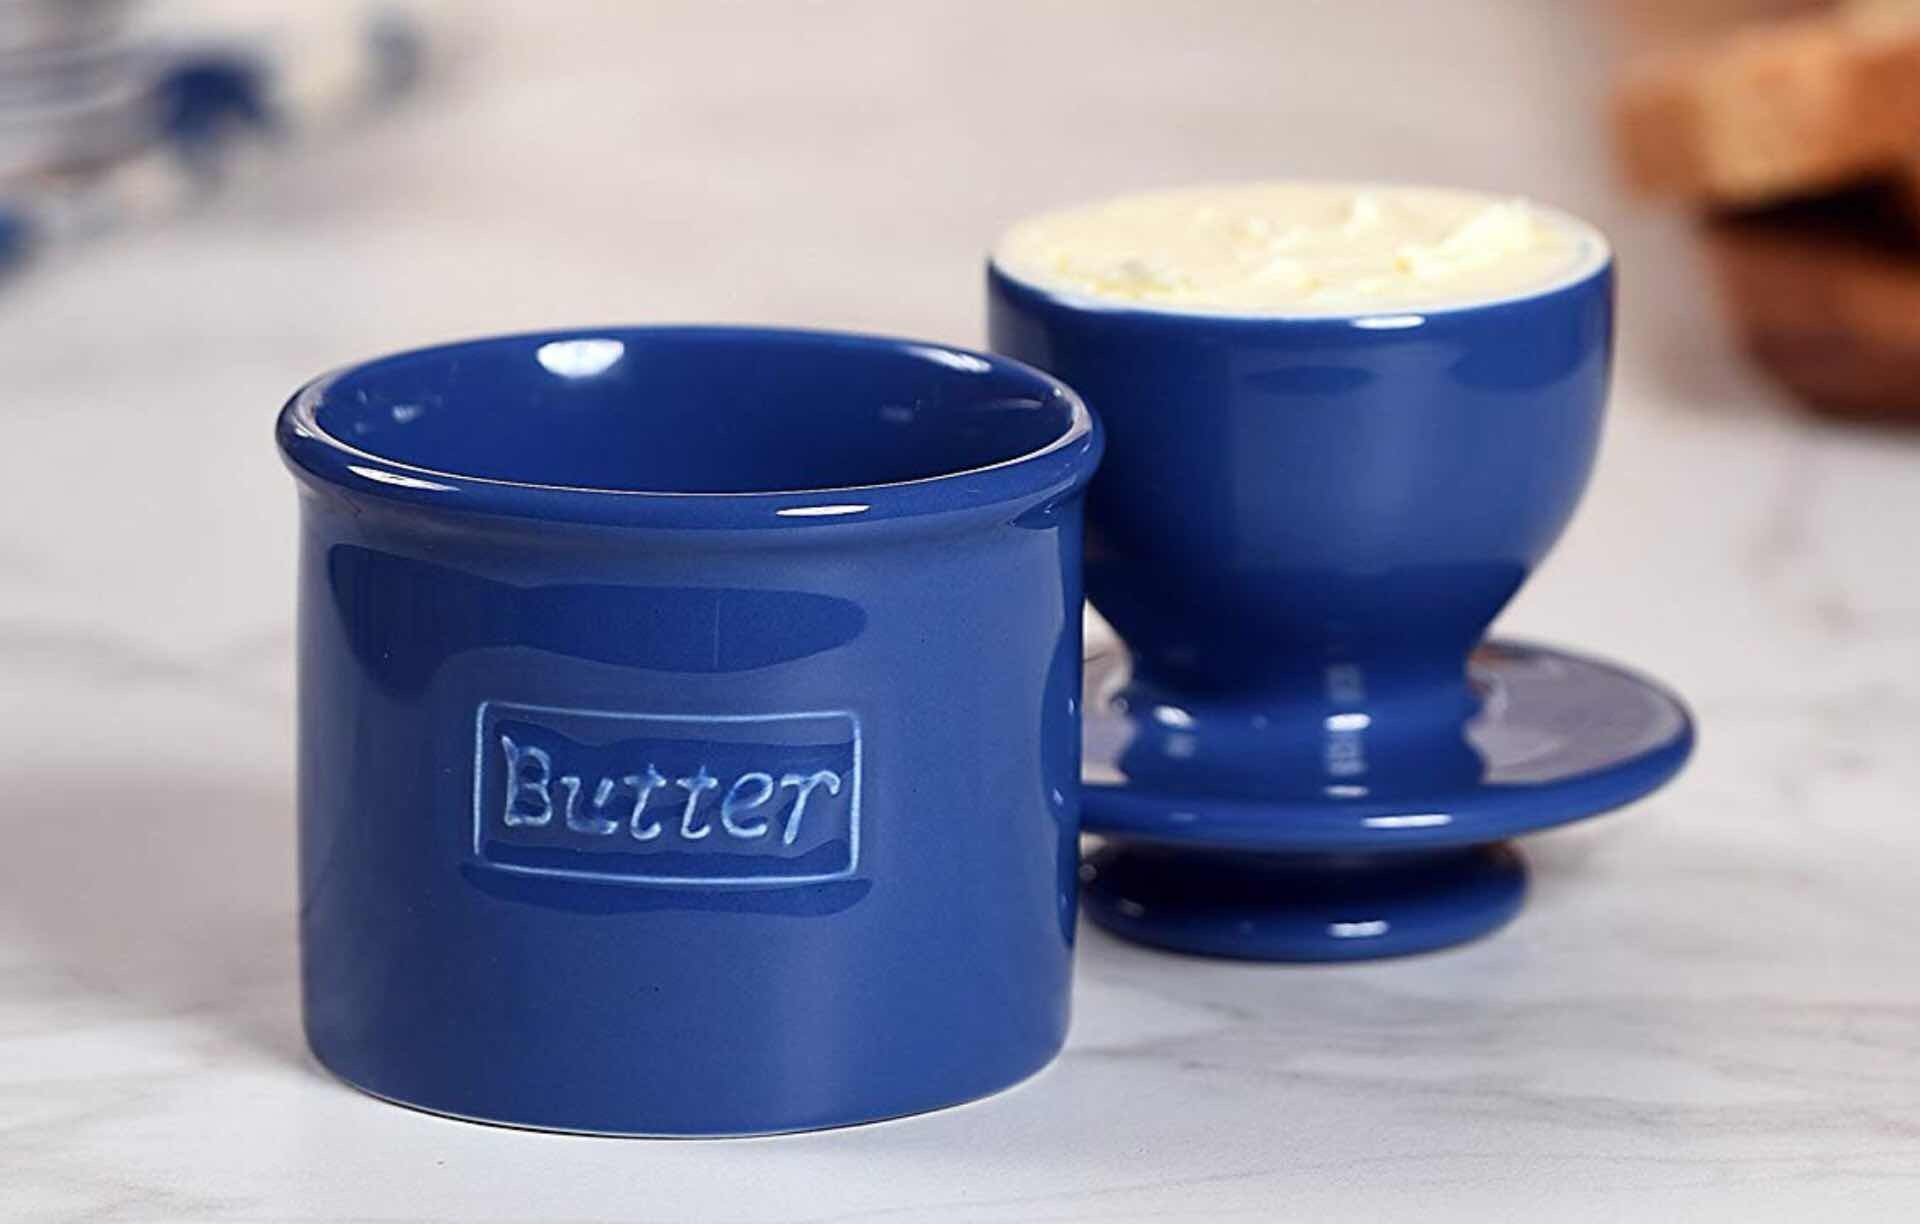 the-original-butter-bell-crock-by-l-tremain-royal-blue